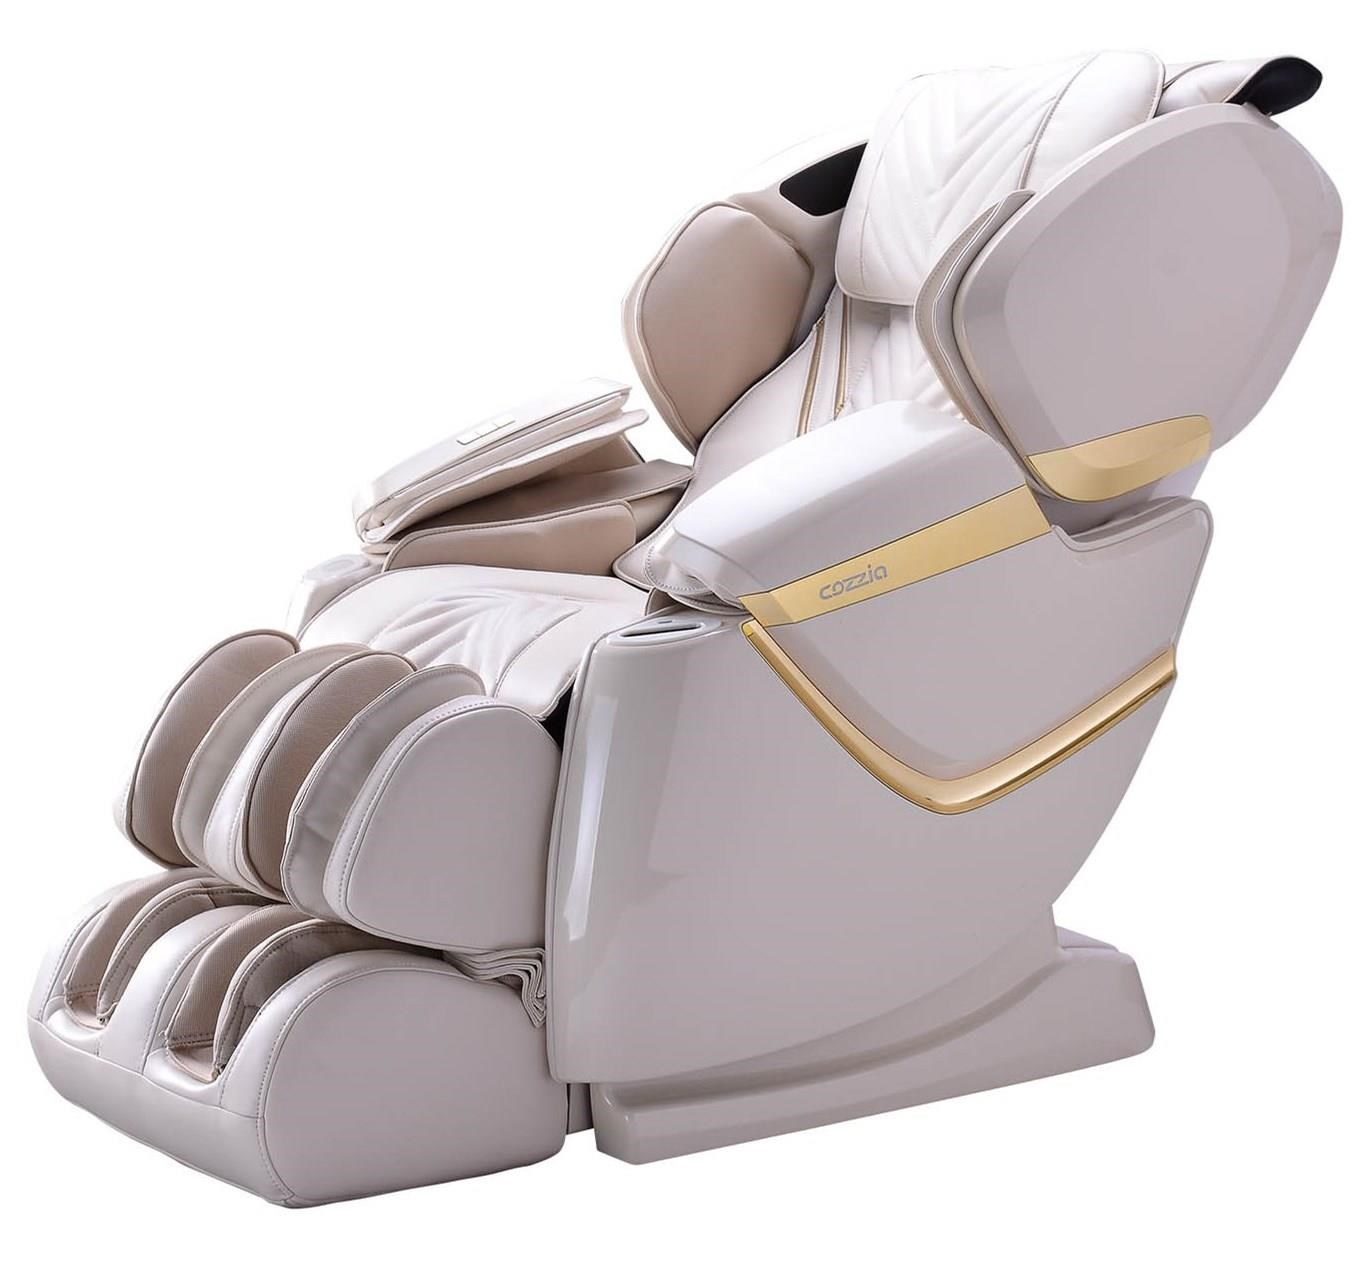 CZ-641 Power Massage Recliner by Cozzia at Northeast Factory Direct